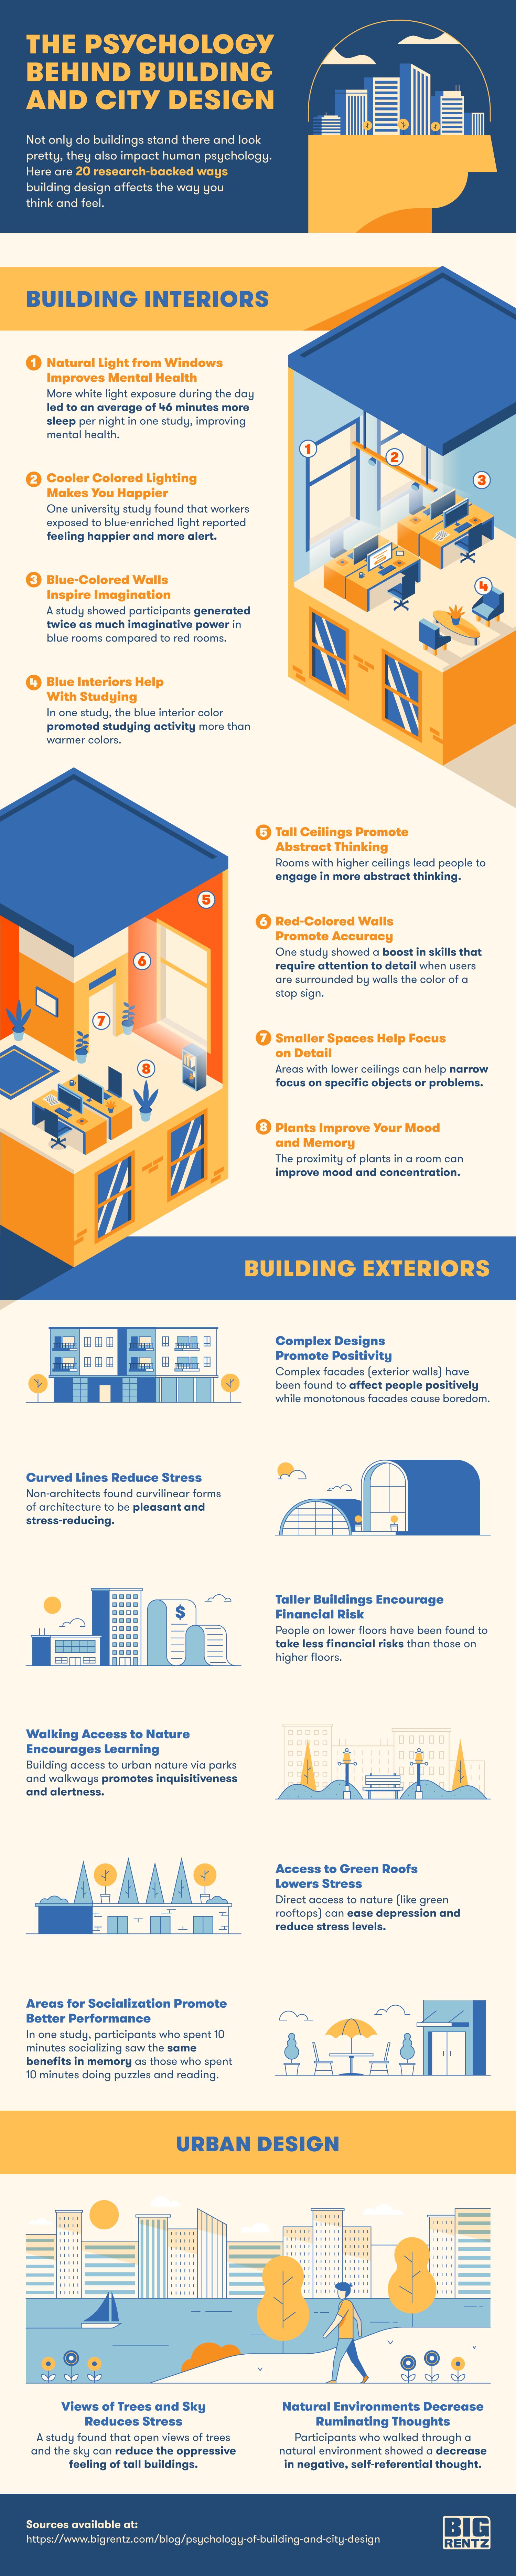 20 psychological effects of building interiors, building exteriors, and urban design.